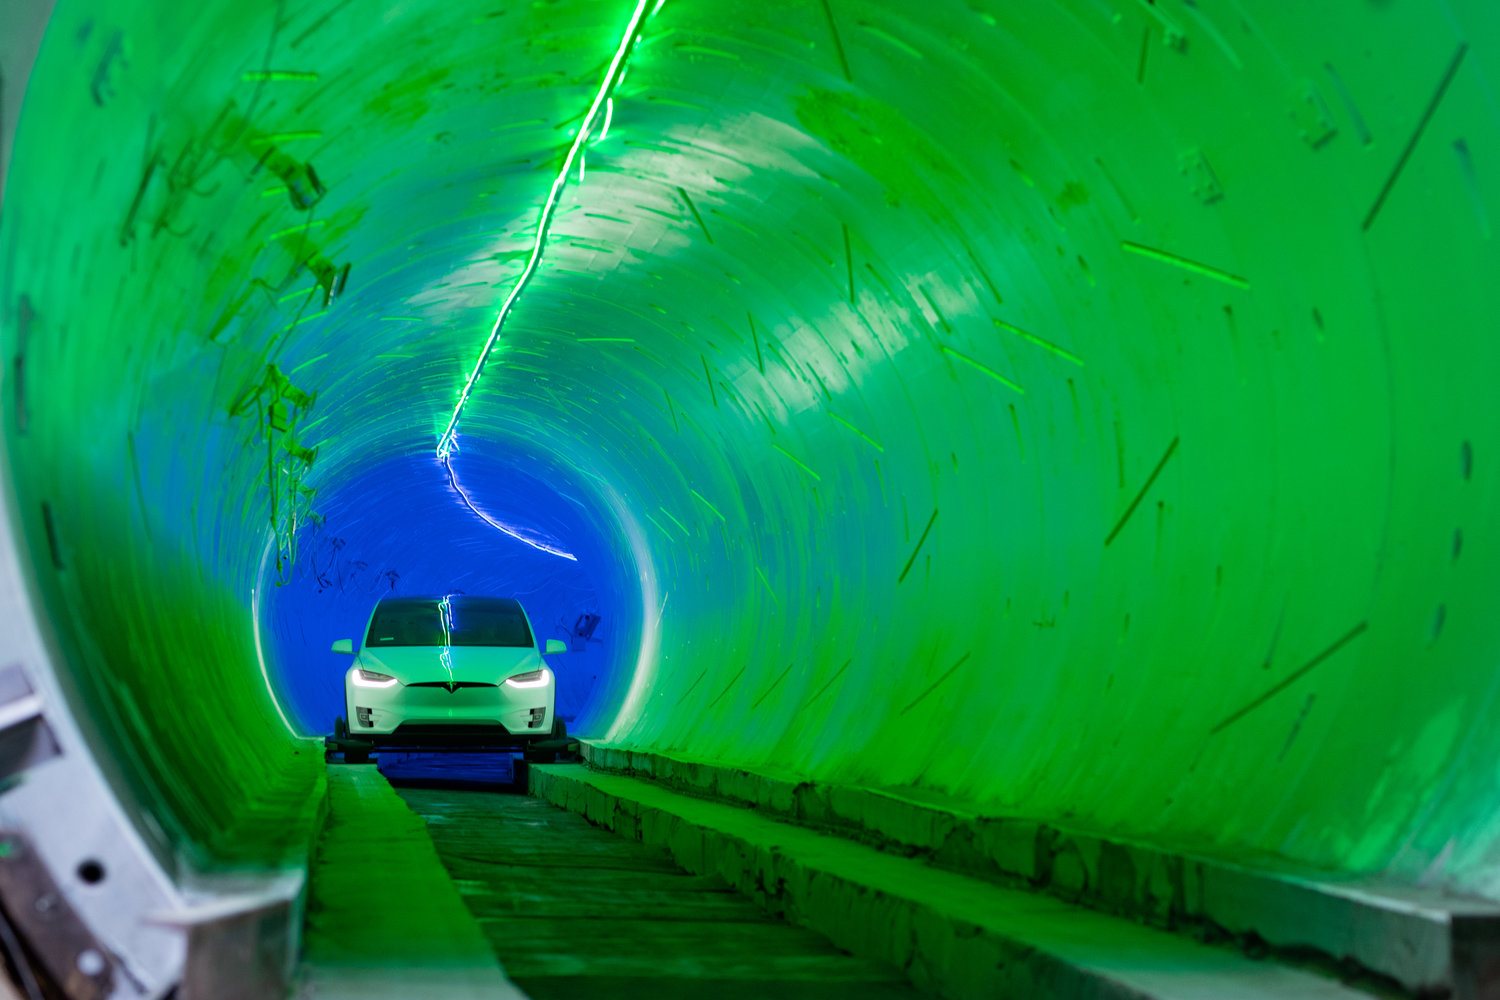 A look inside an earlier test tunnel built by The Boring Company